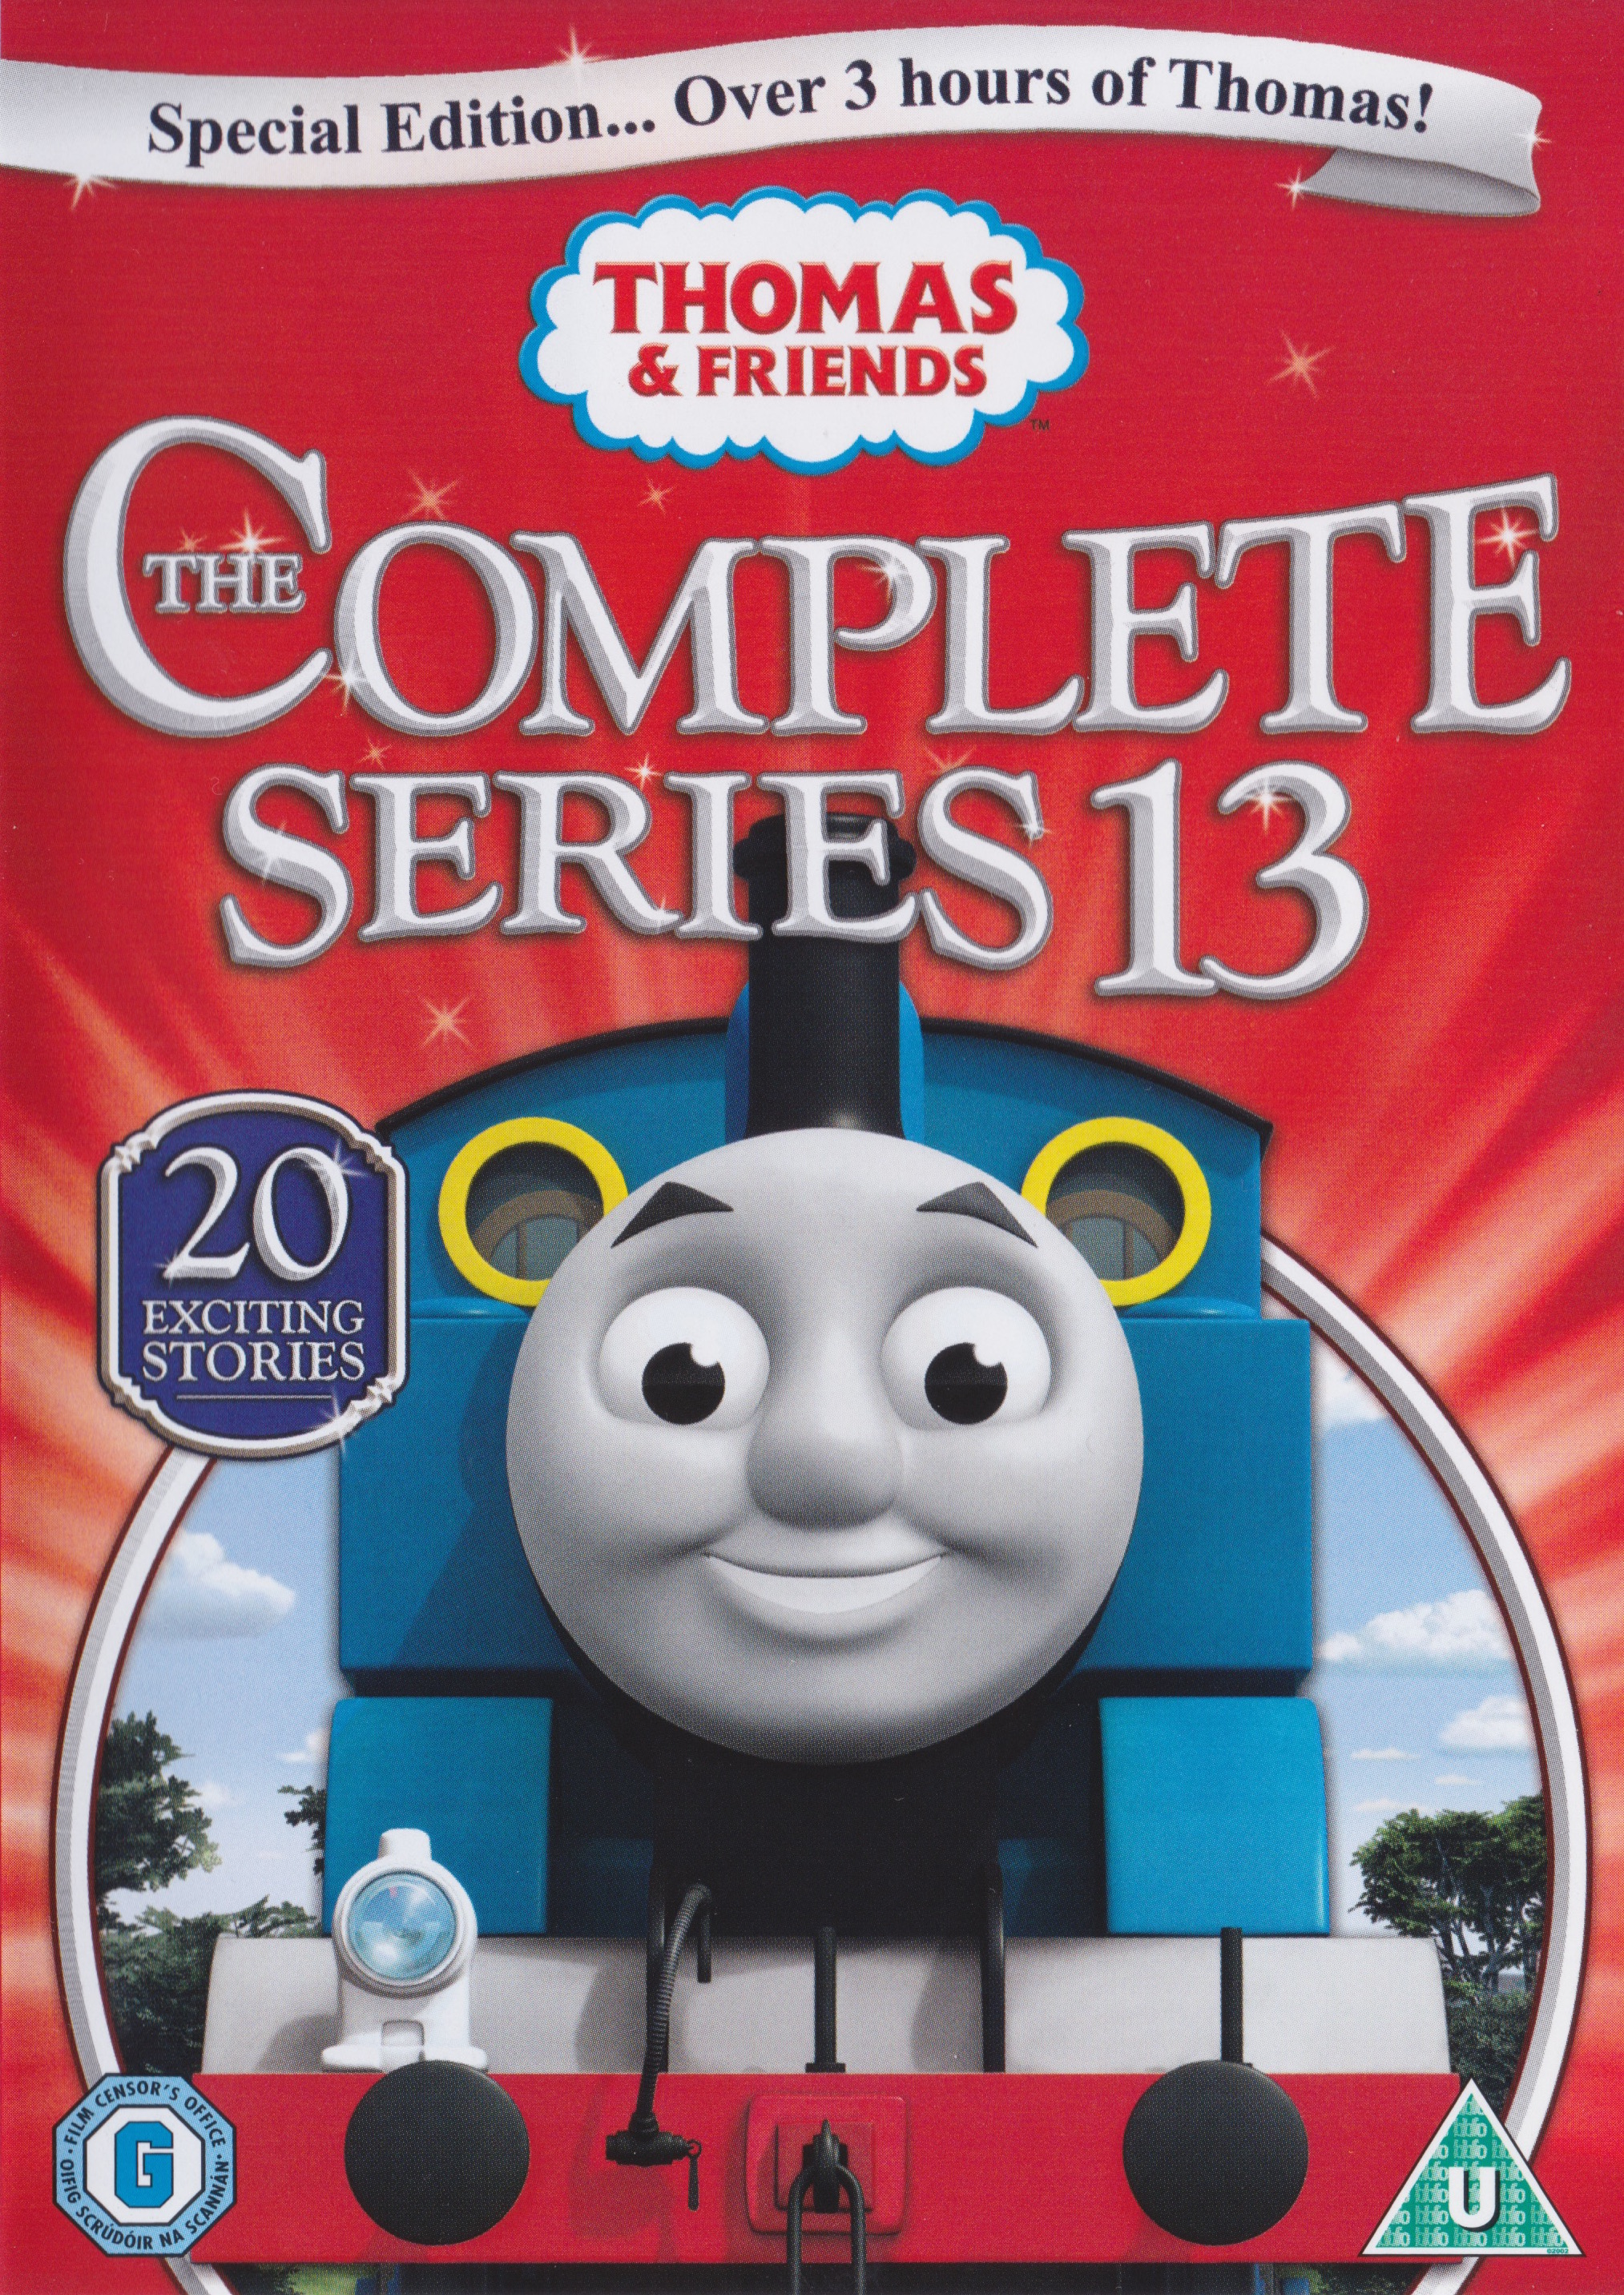 The Complete Series 13